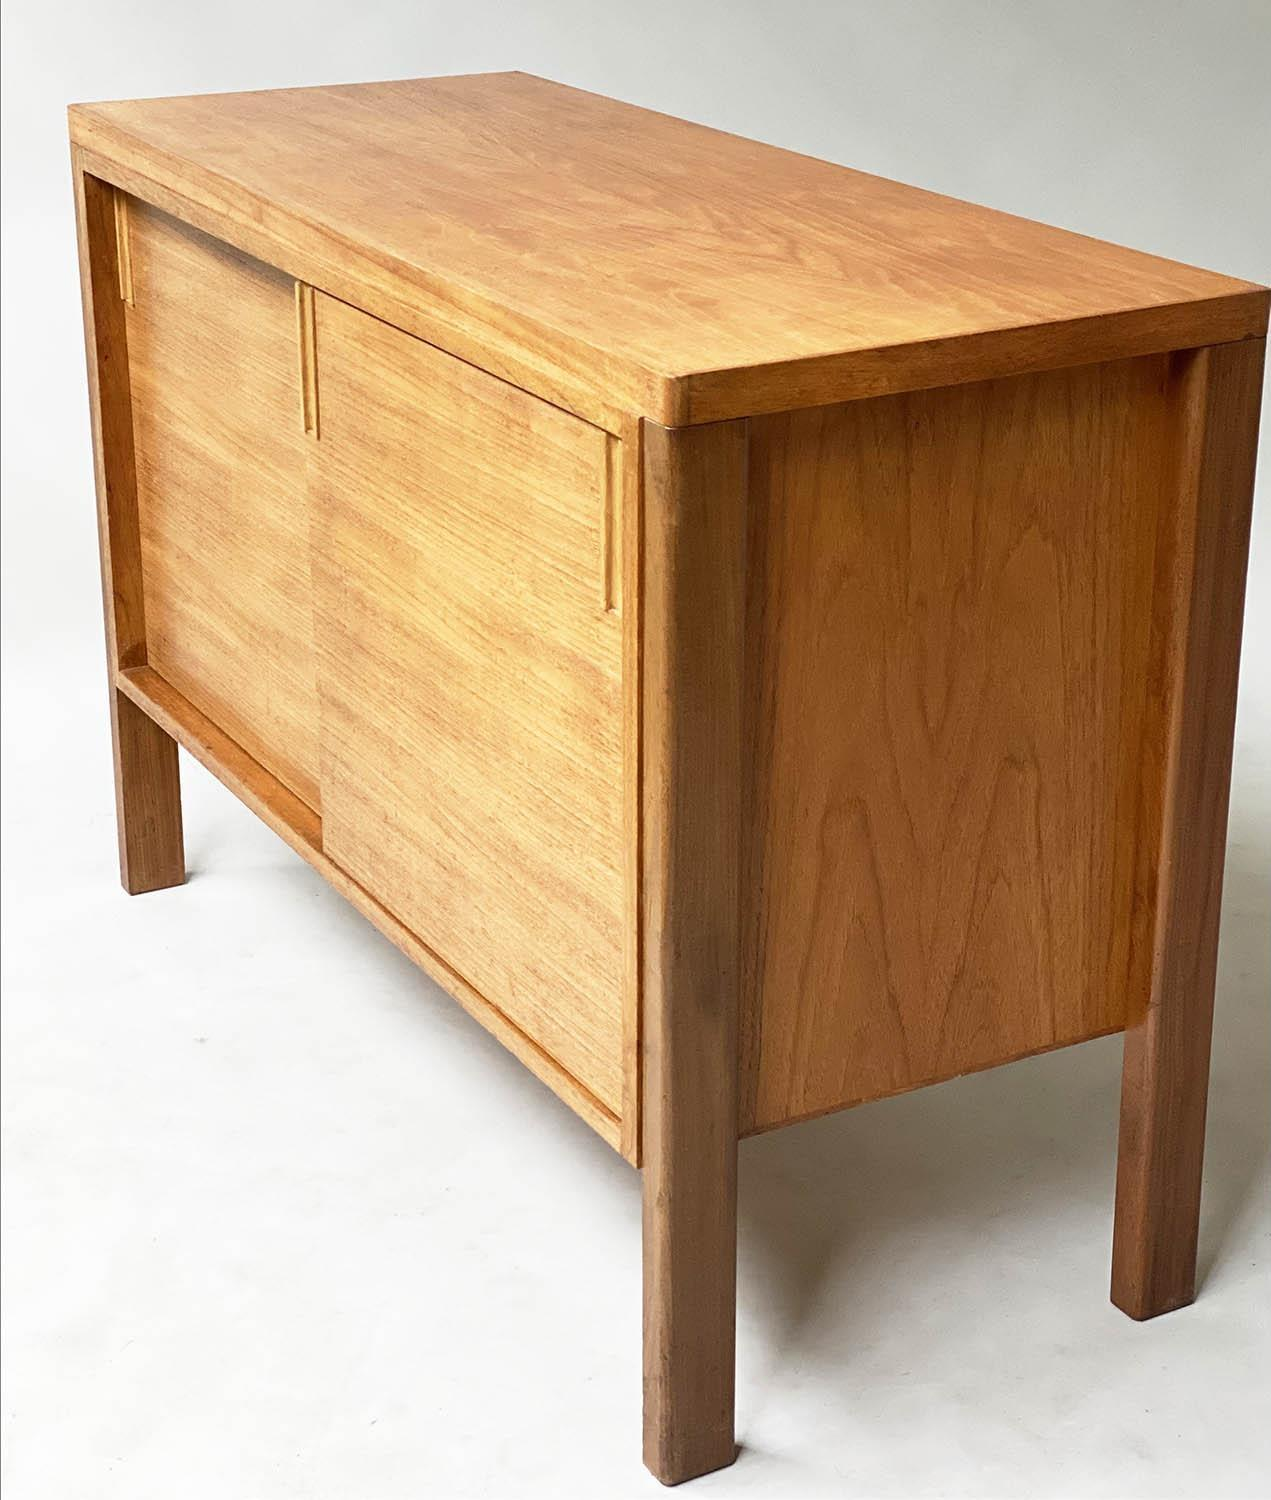 GORDON RUSSELL SIDEBOARD, 1960's walnut with two sliding doors enclosing shelves stamped Gordon - Image 4 of 8